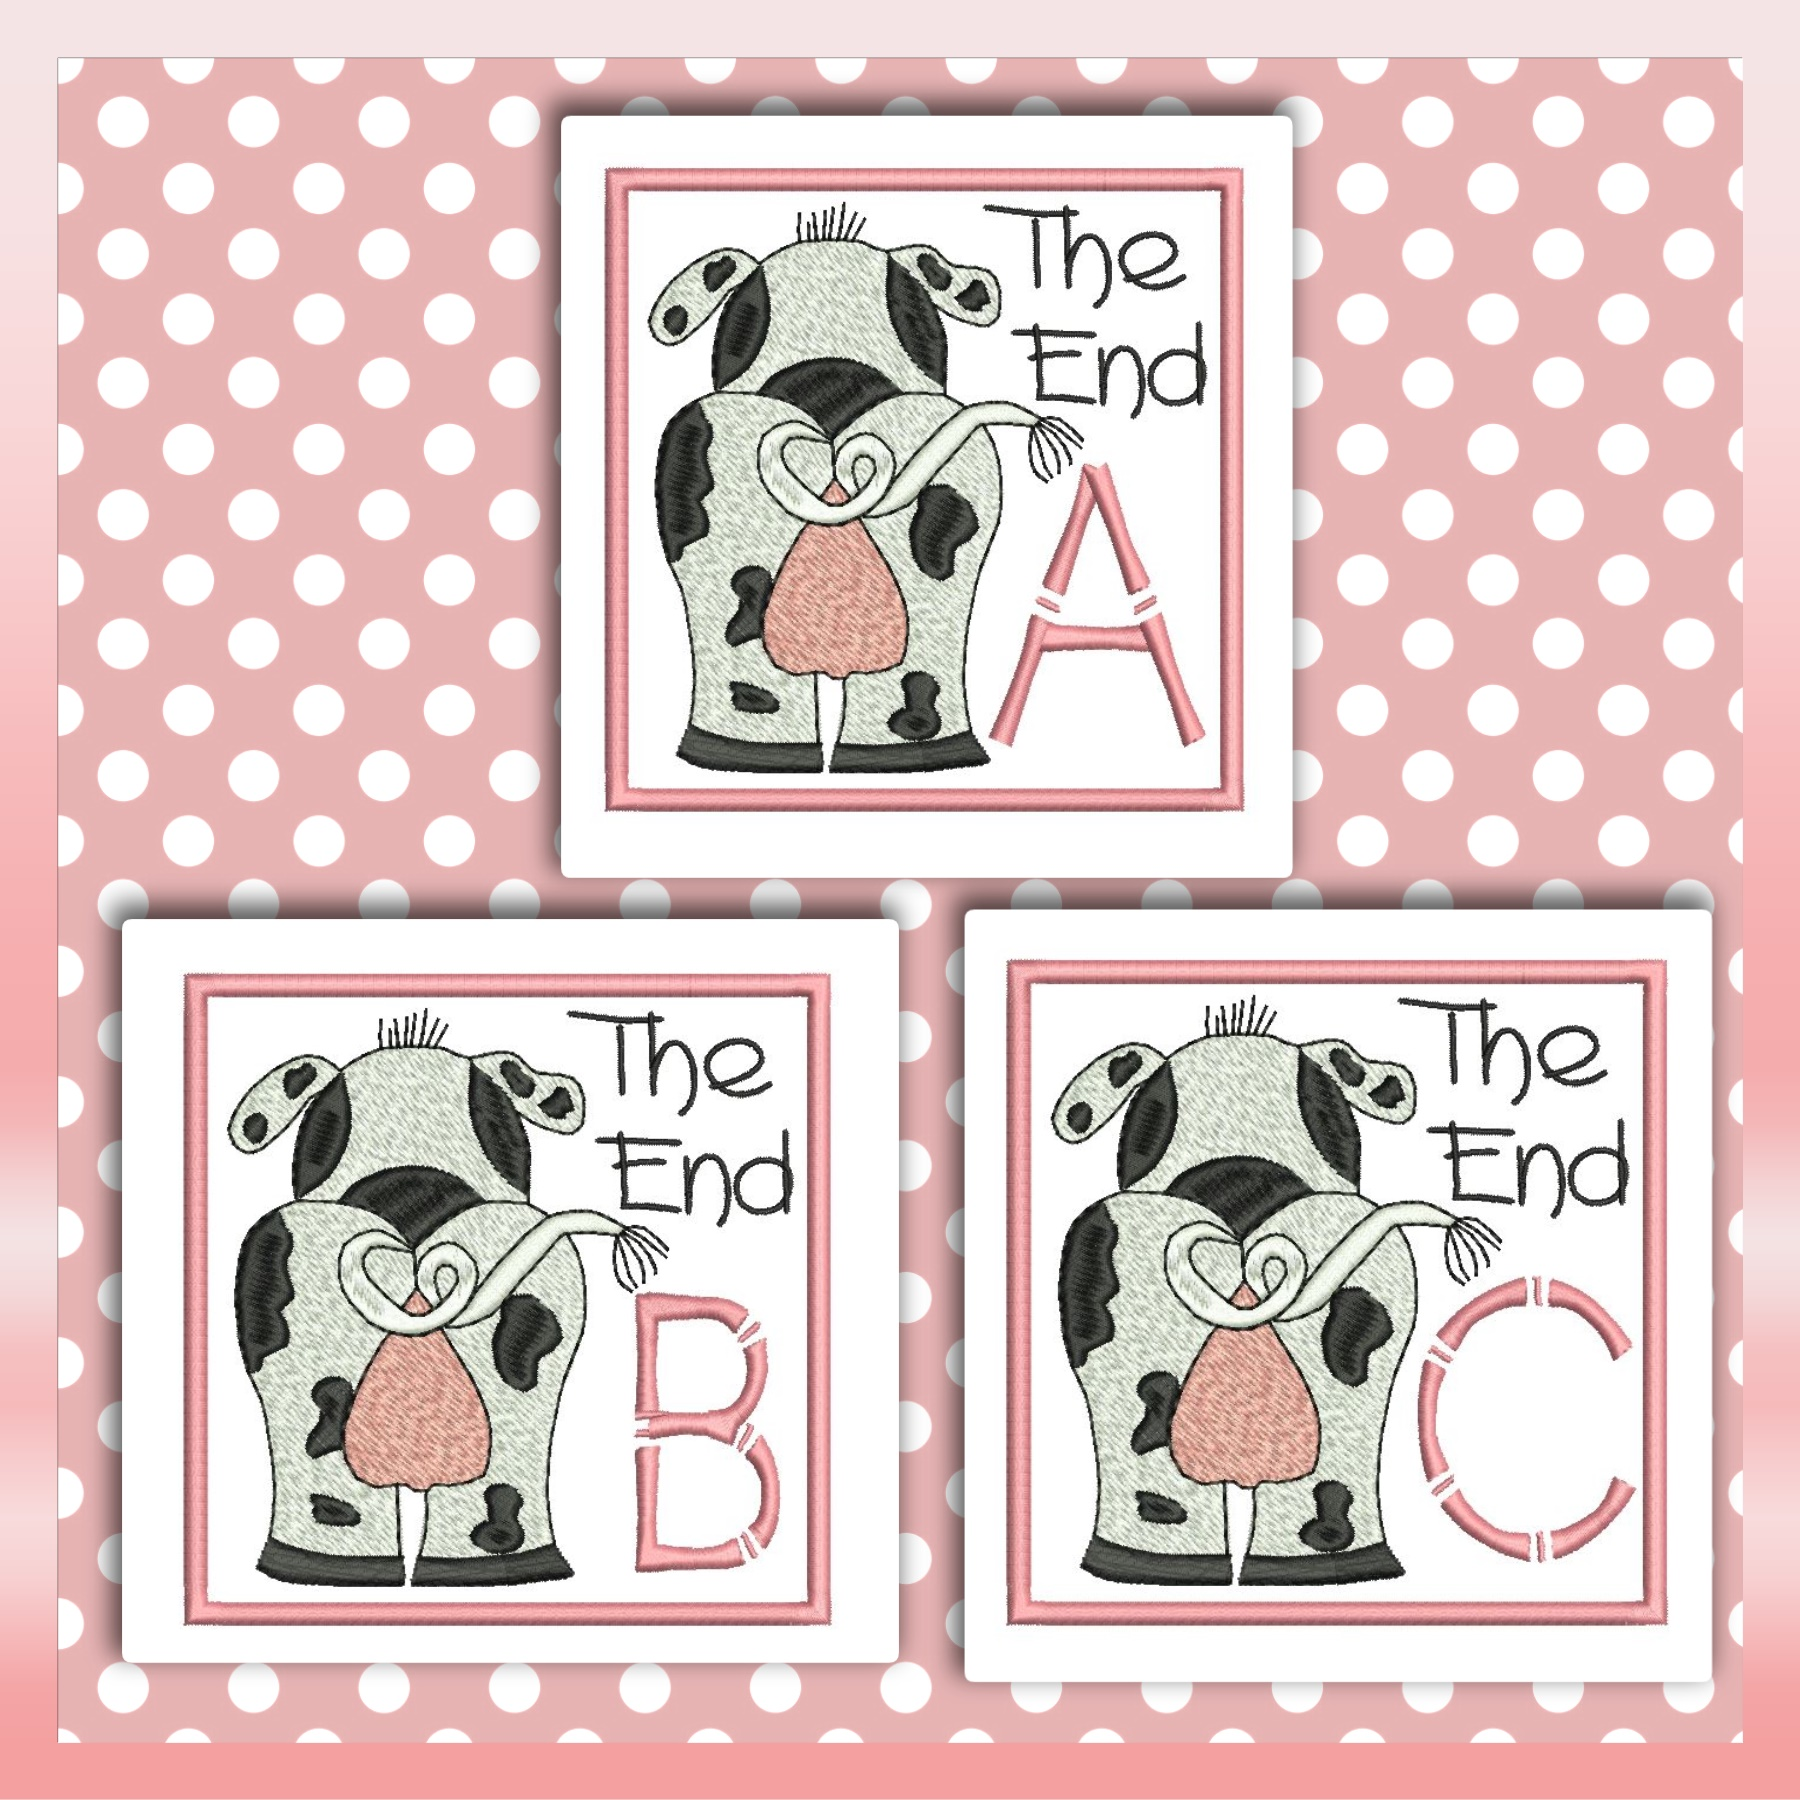 The End Cow Font ABC